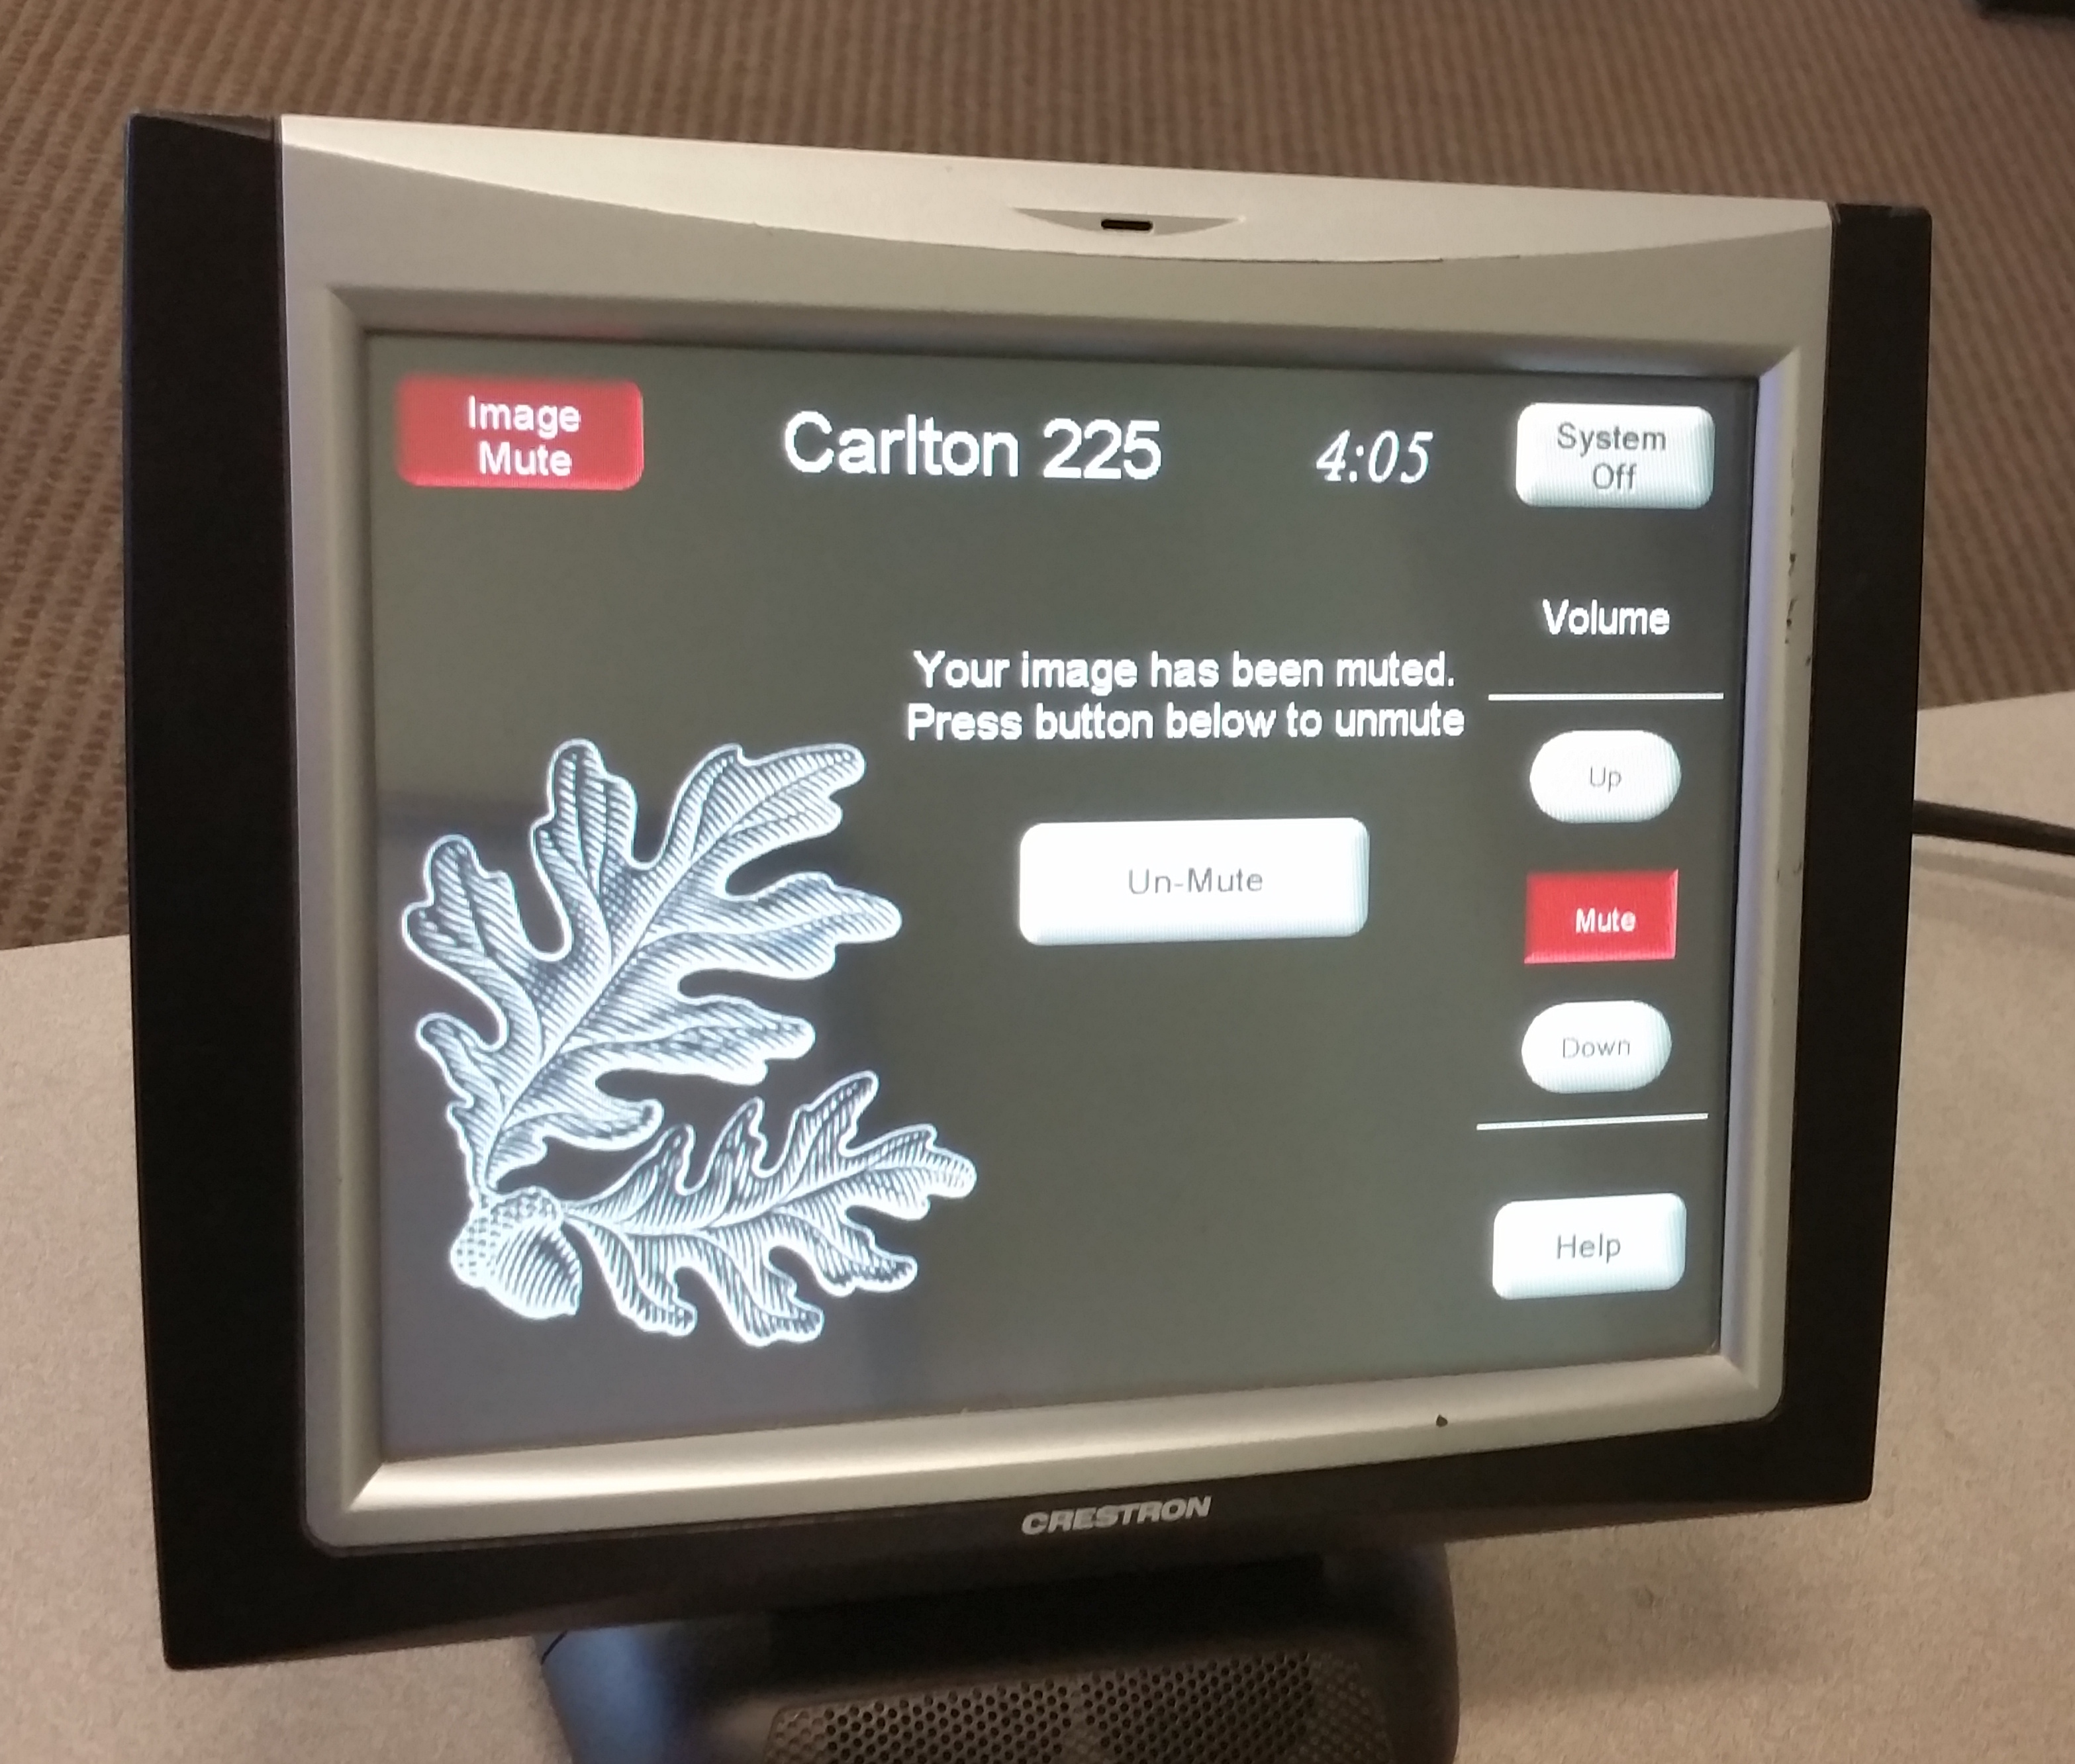 Photo of crestron control touch panel showing the image mute screen